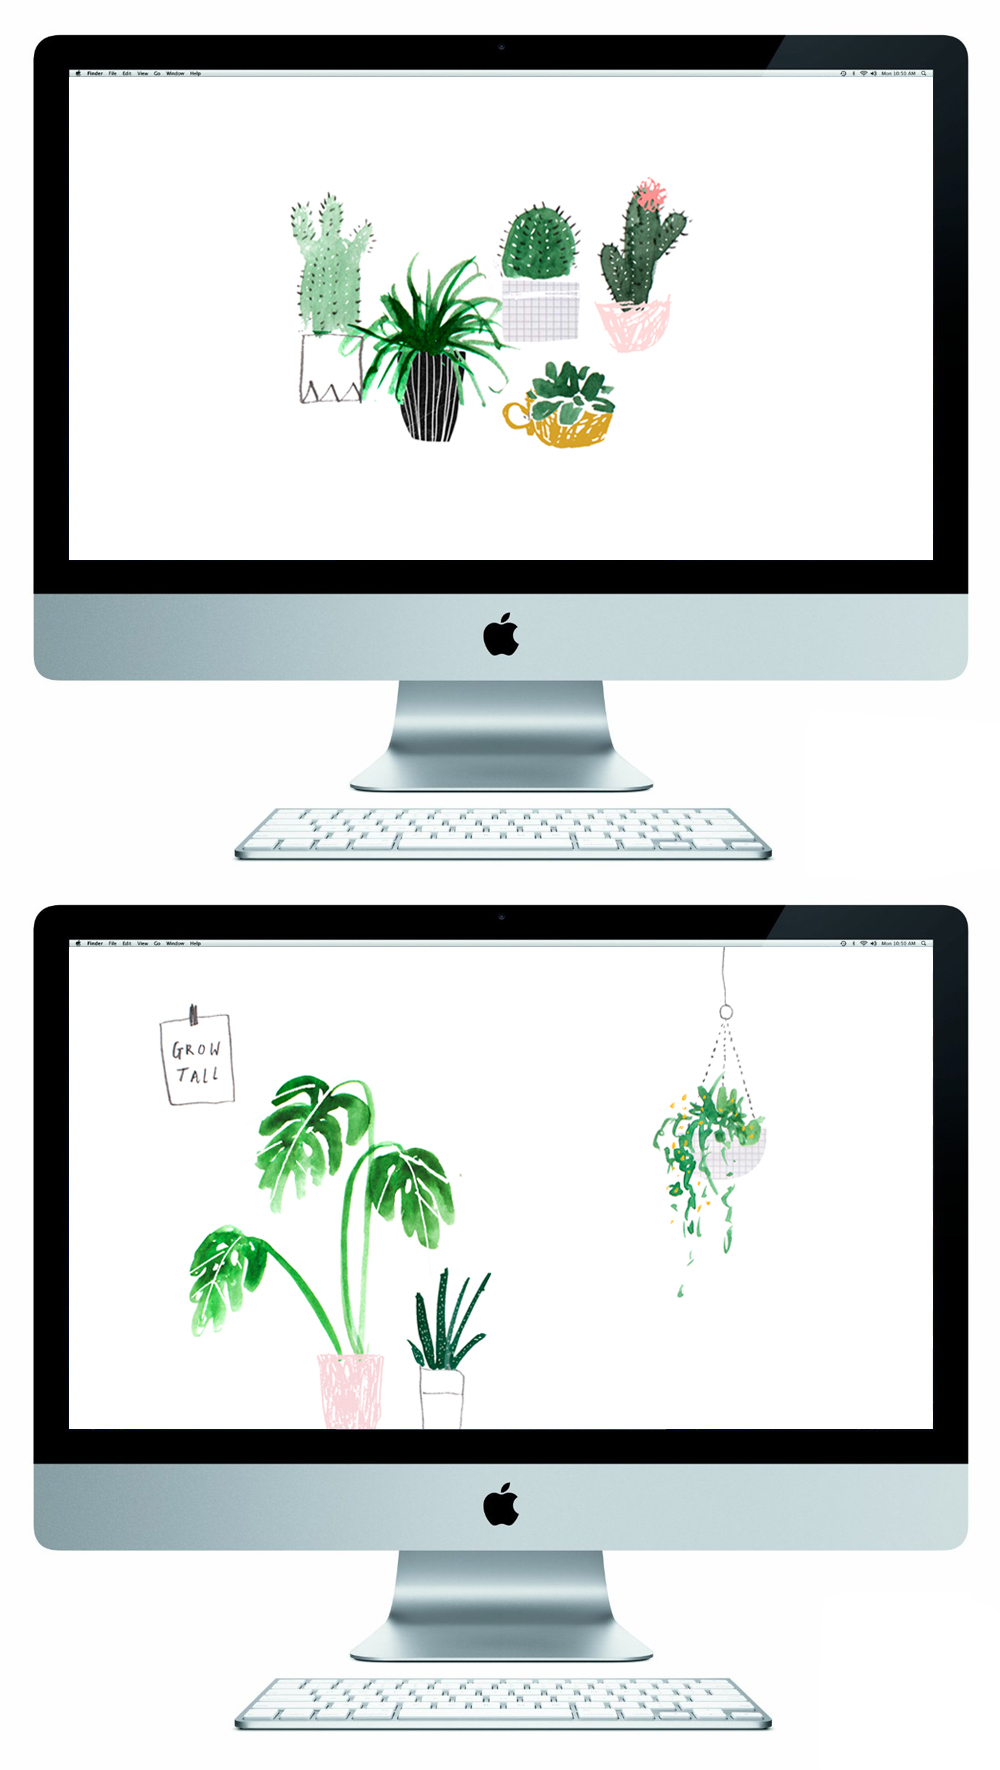 Adorable-Free-featuring-cute-succulent-illustrations-wallpaper-wp5602749